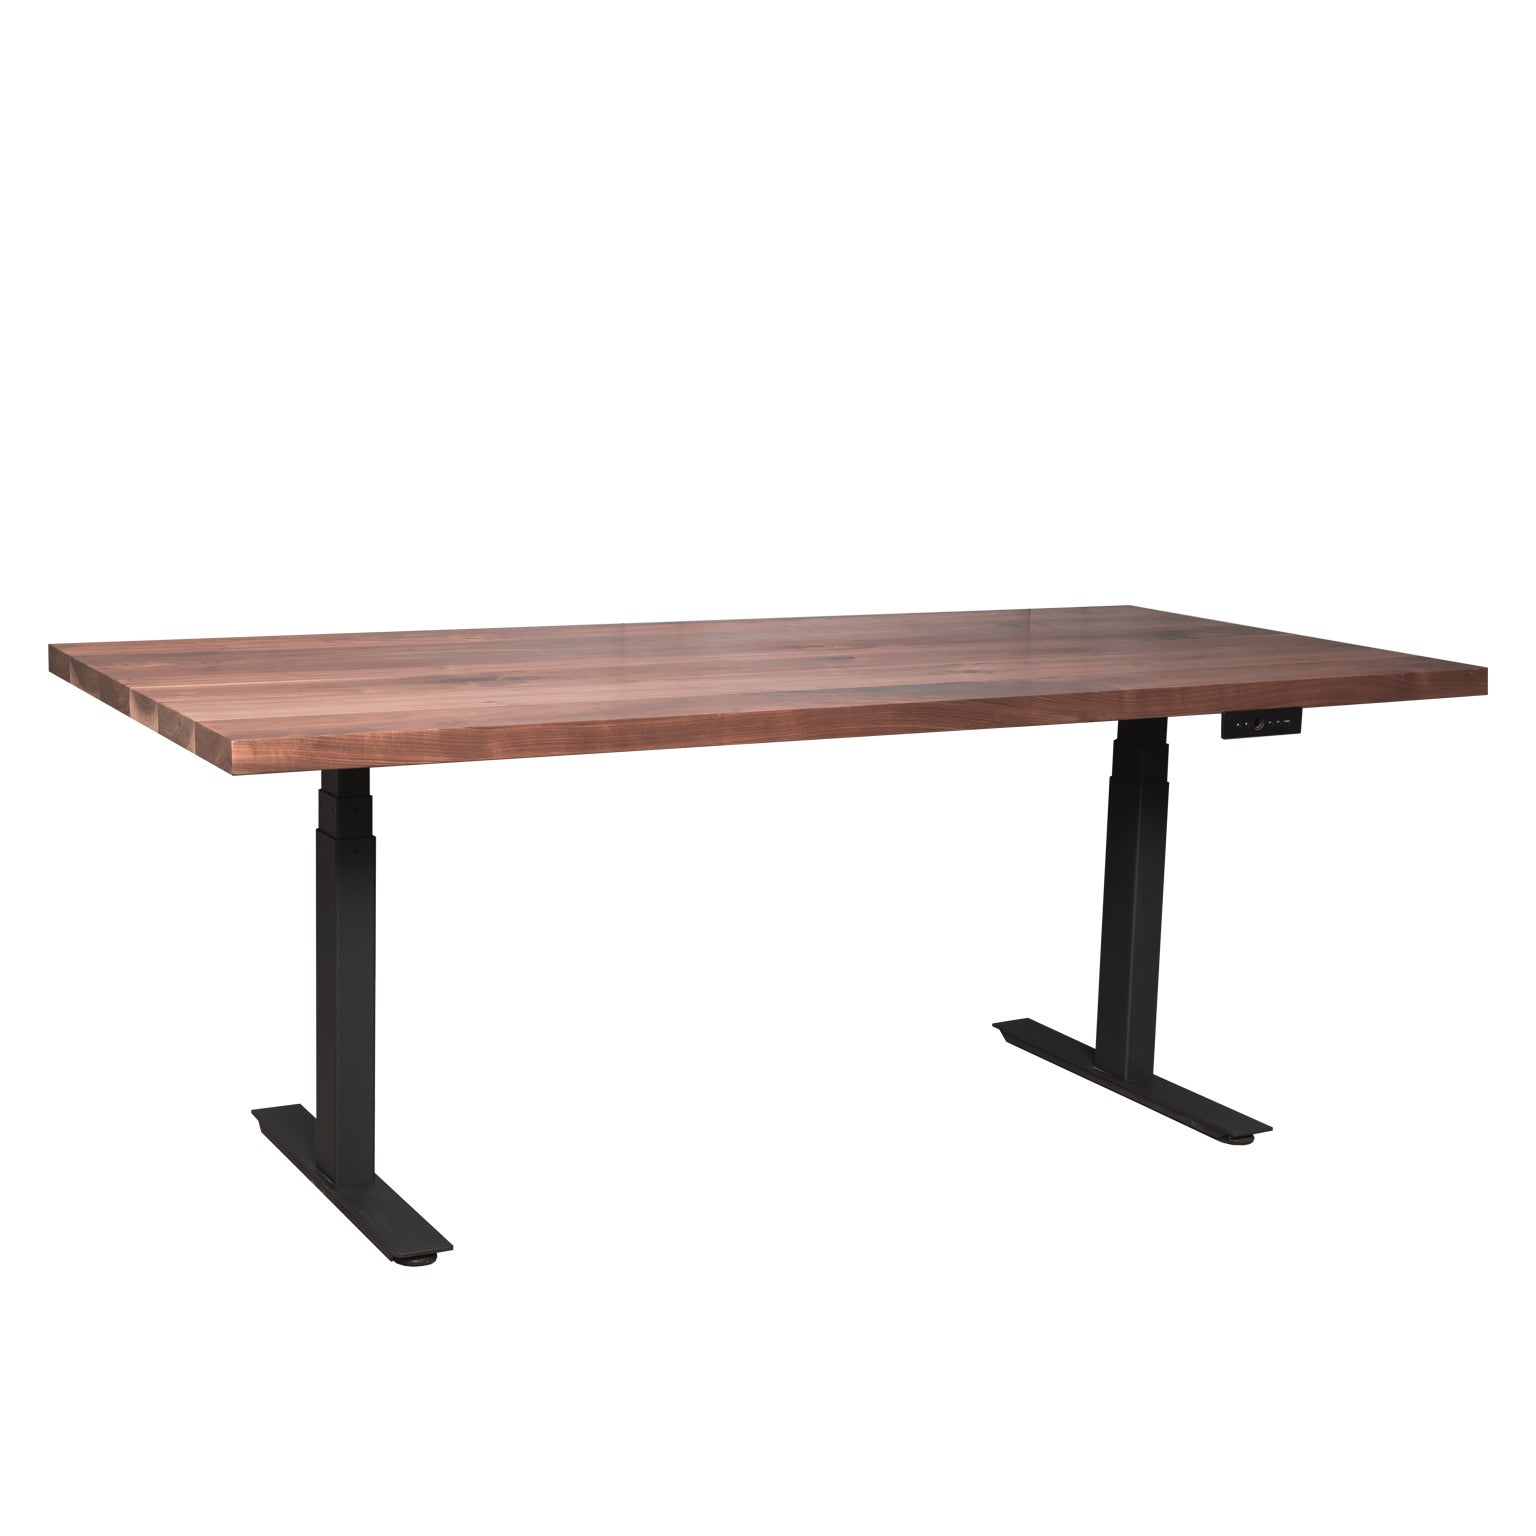 """Custom Sit/Stand """"Essentials Desk"""" with Solid Wood Top and Metal Base, Medium"""